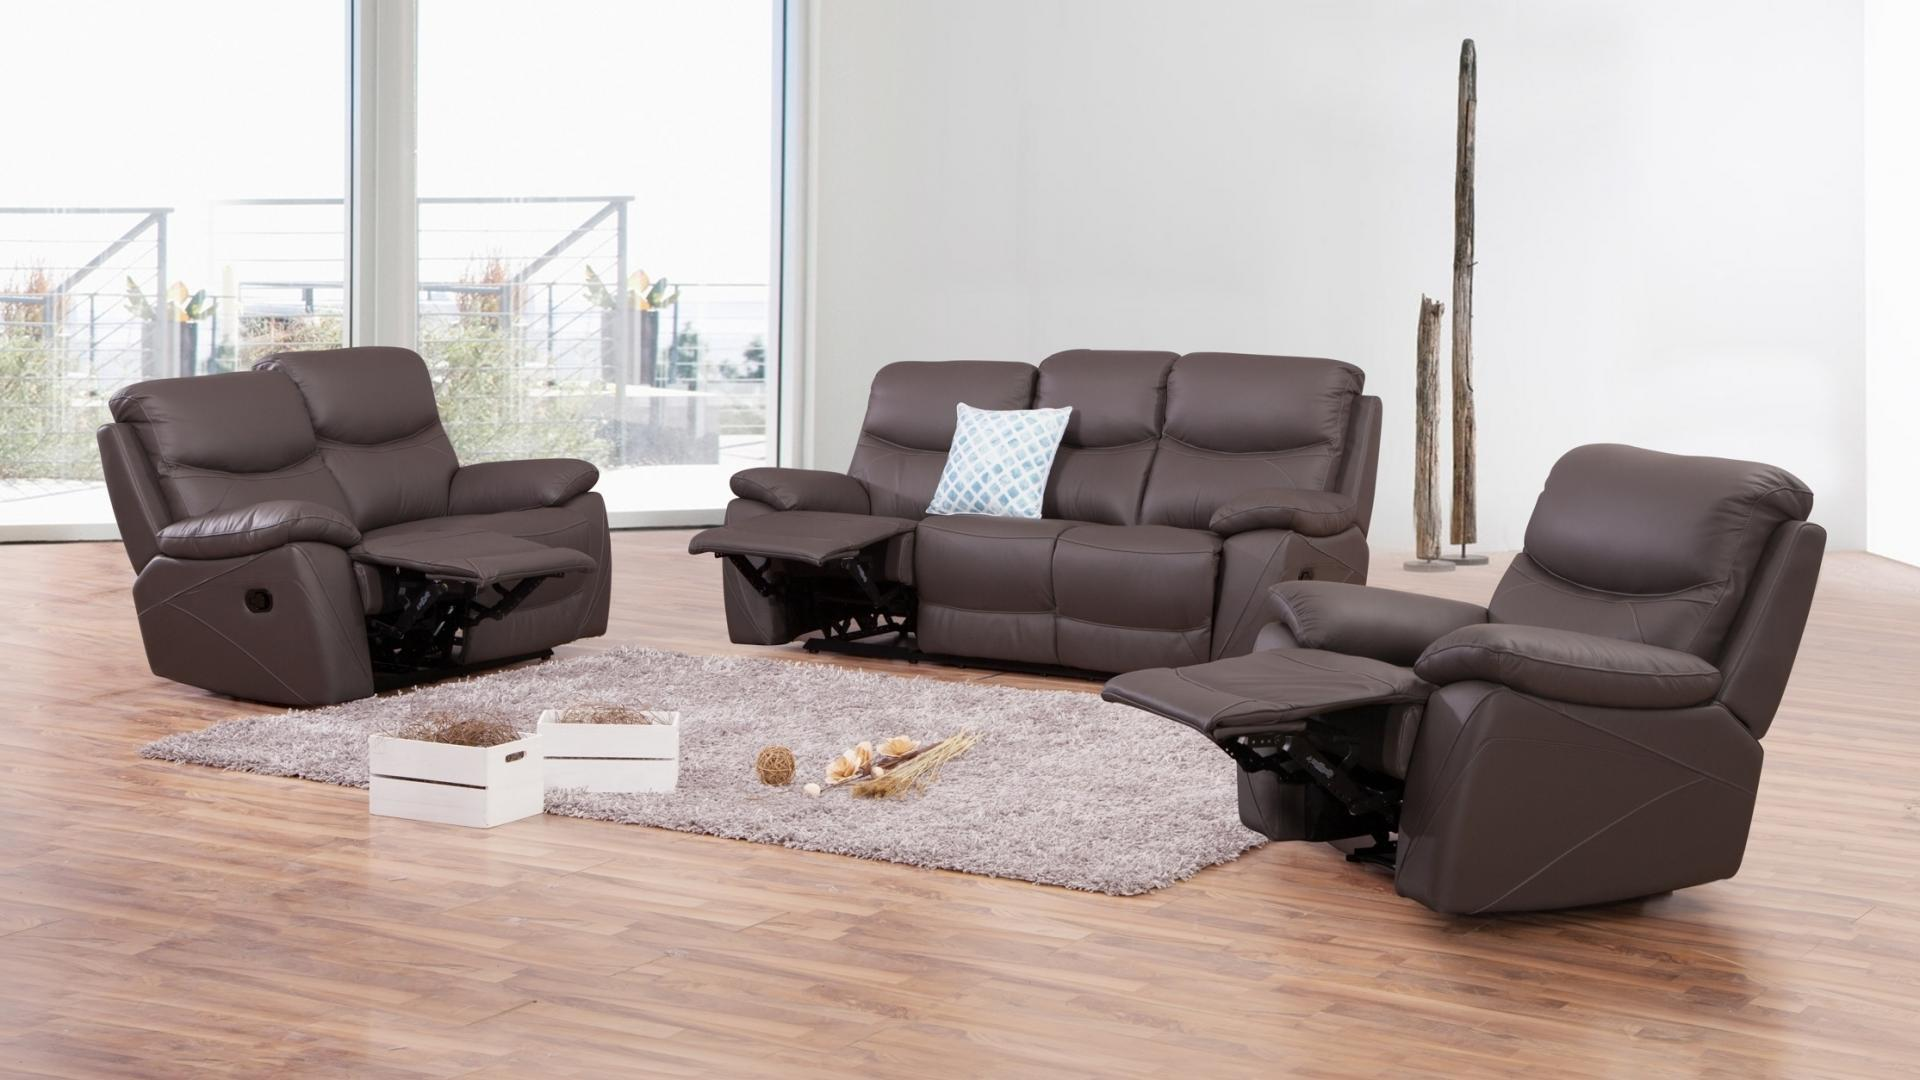 chelsea leather sofa 8 way hand tied costco recliner suite 3 43 2 1 lounge life